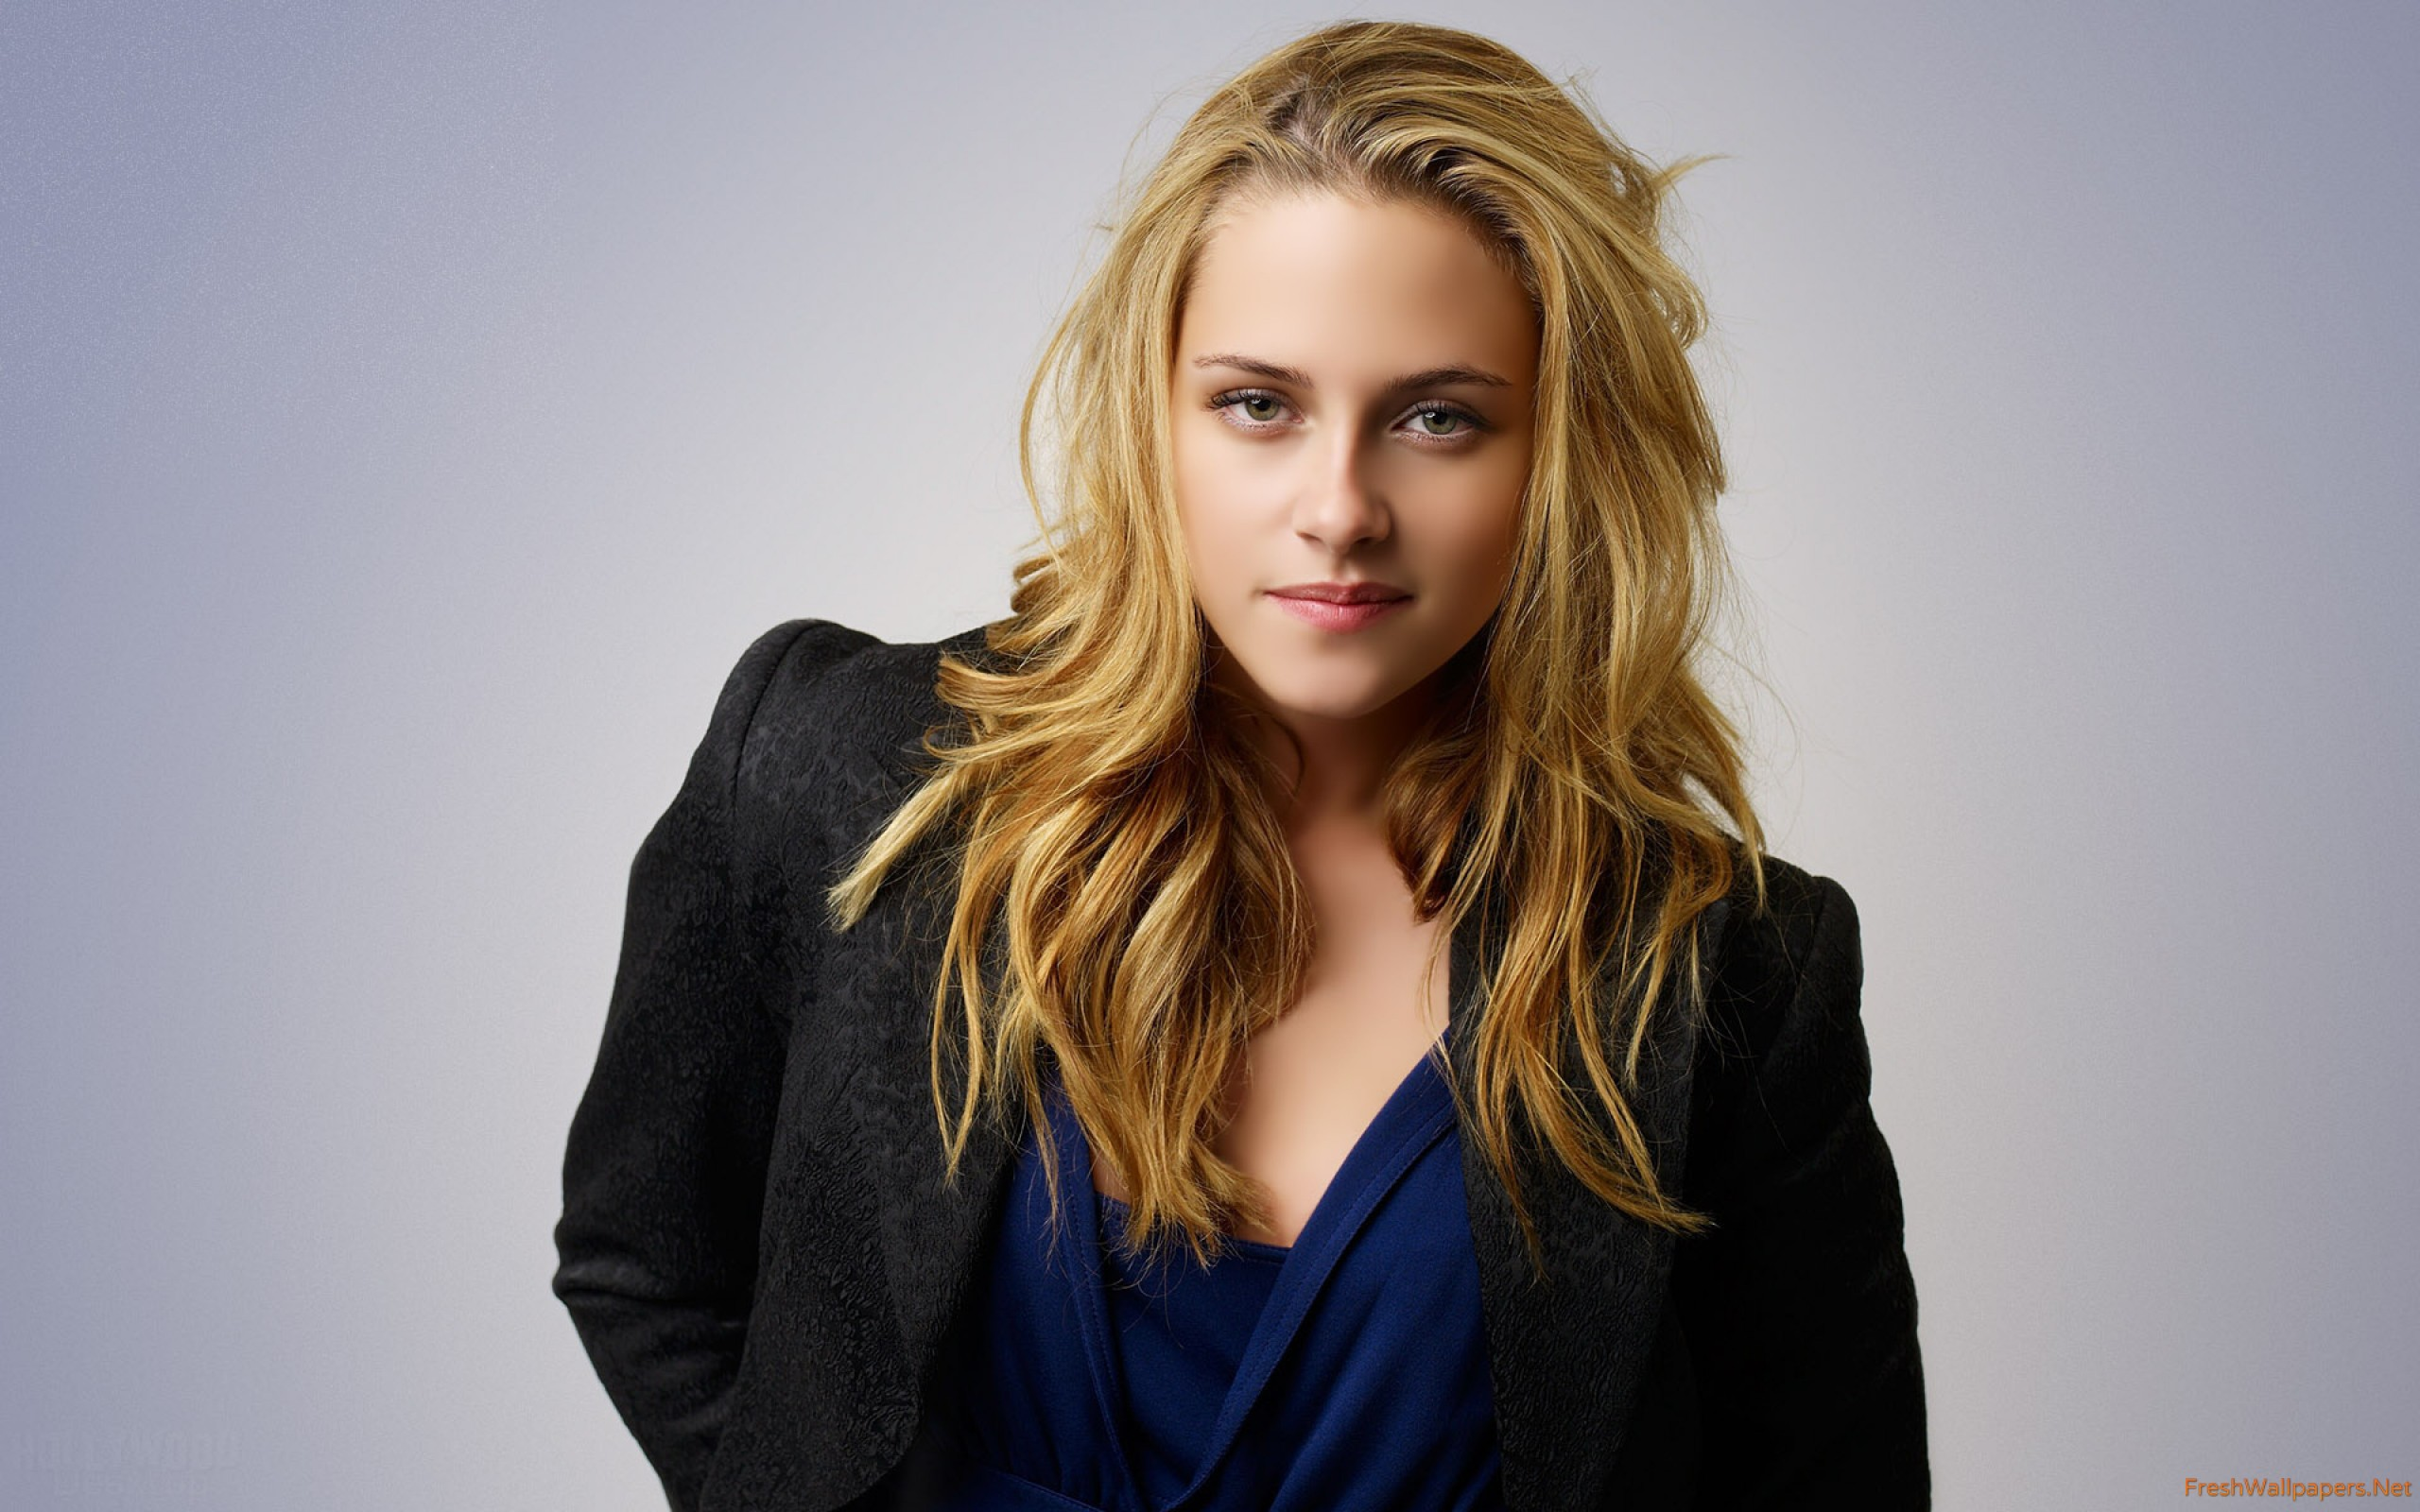 2560x1600 - Riley Keough Wallpapers 5